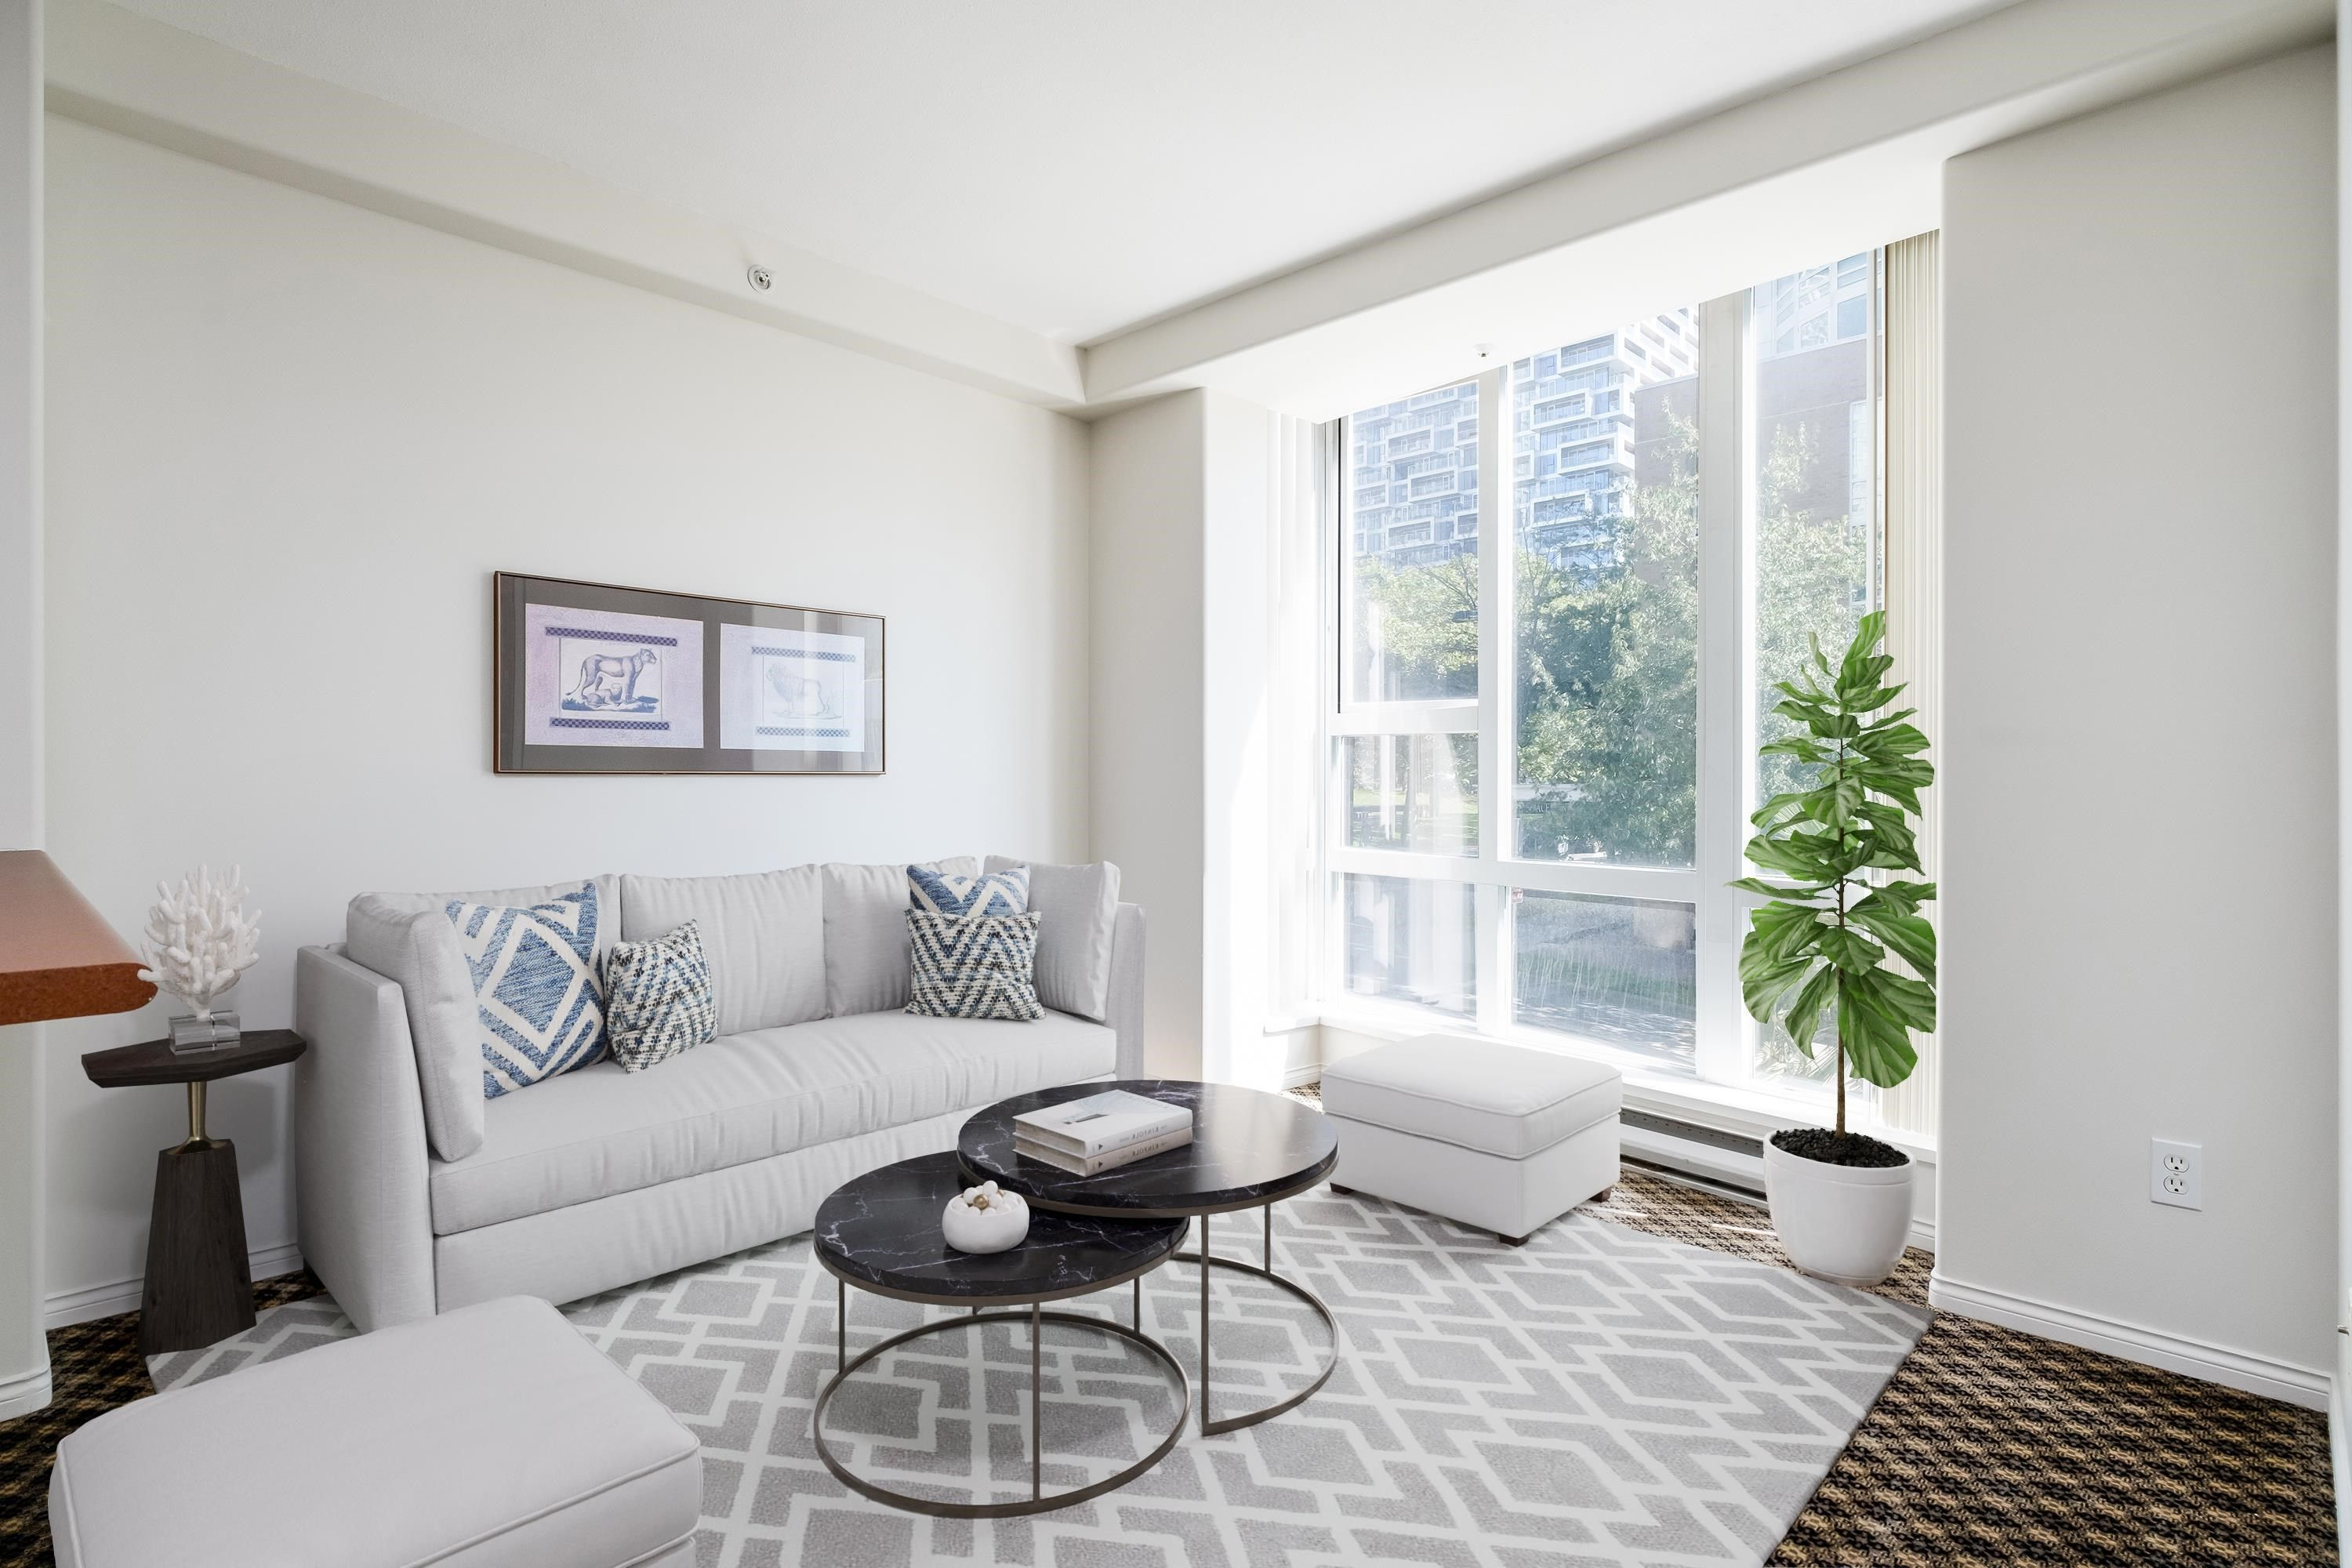 """Main Photo: 208 910 BEACH Avenue in Vancouver: Yaletown Condo for sale in """"910 BEACH AVE"""" (Vancouver West)  : MLS®# R2617665"""